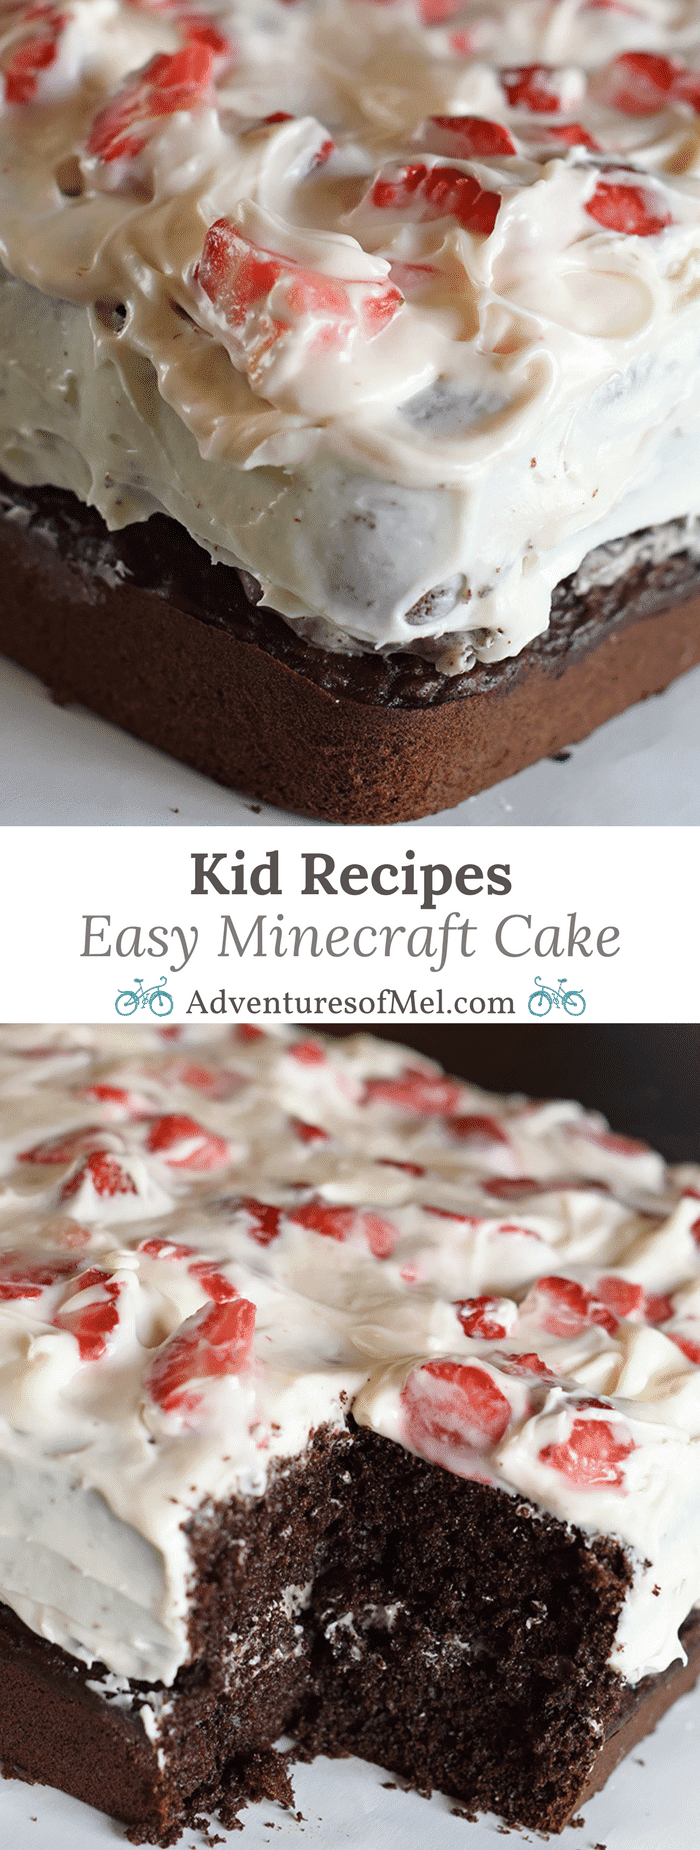 Hosting a Minecraft party? Celebrating a Minecraft birthday? How to make an easy Minecraft cake with a simple cake mix recipe that doubles as a fun kid recipe. Add in Oreos, cream cheese, and strawberries. But be warned! It's such a scrumptious cake, it will vanish into thin air!